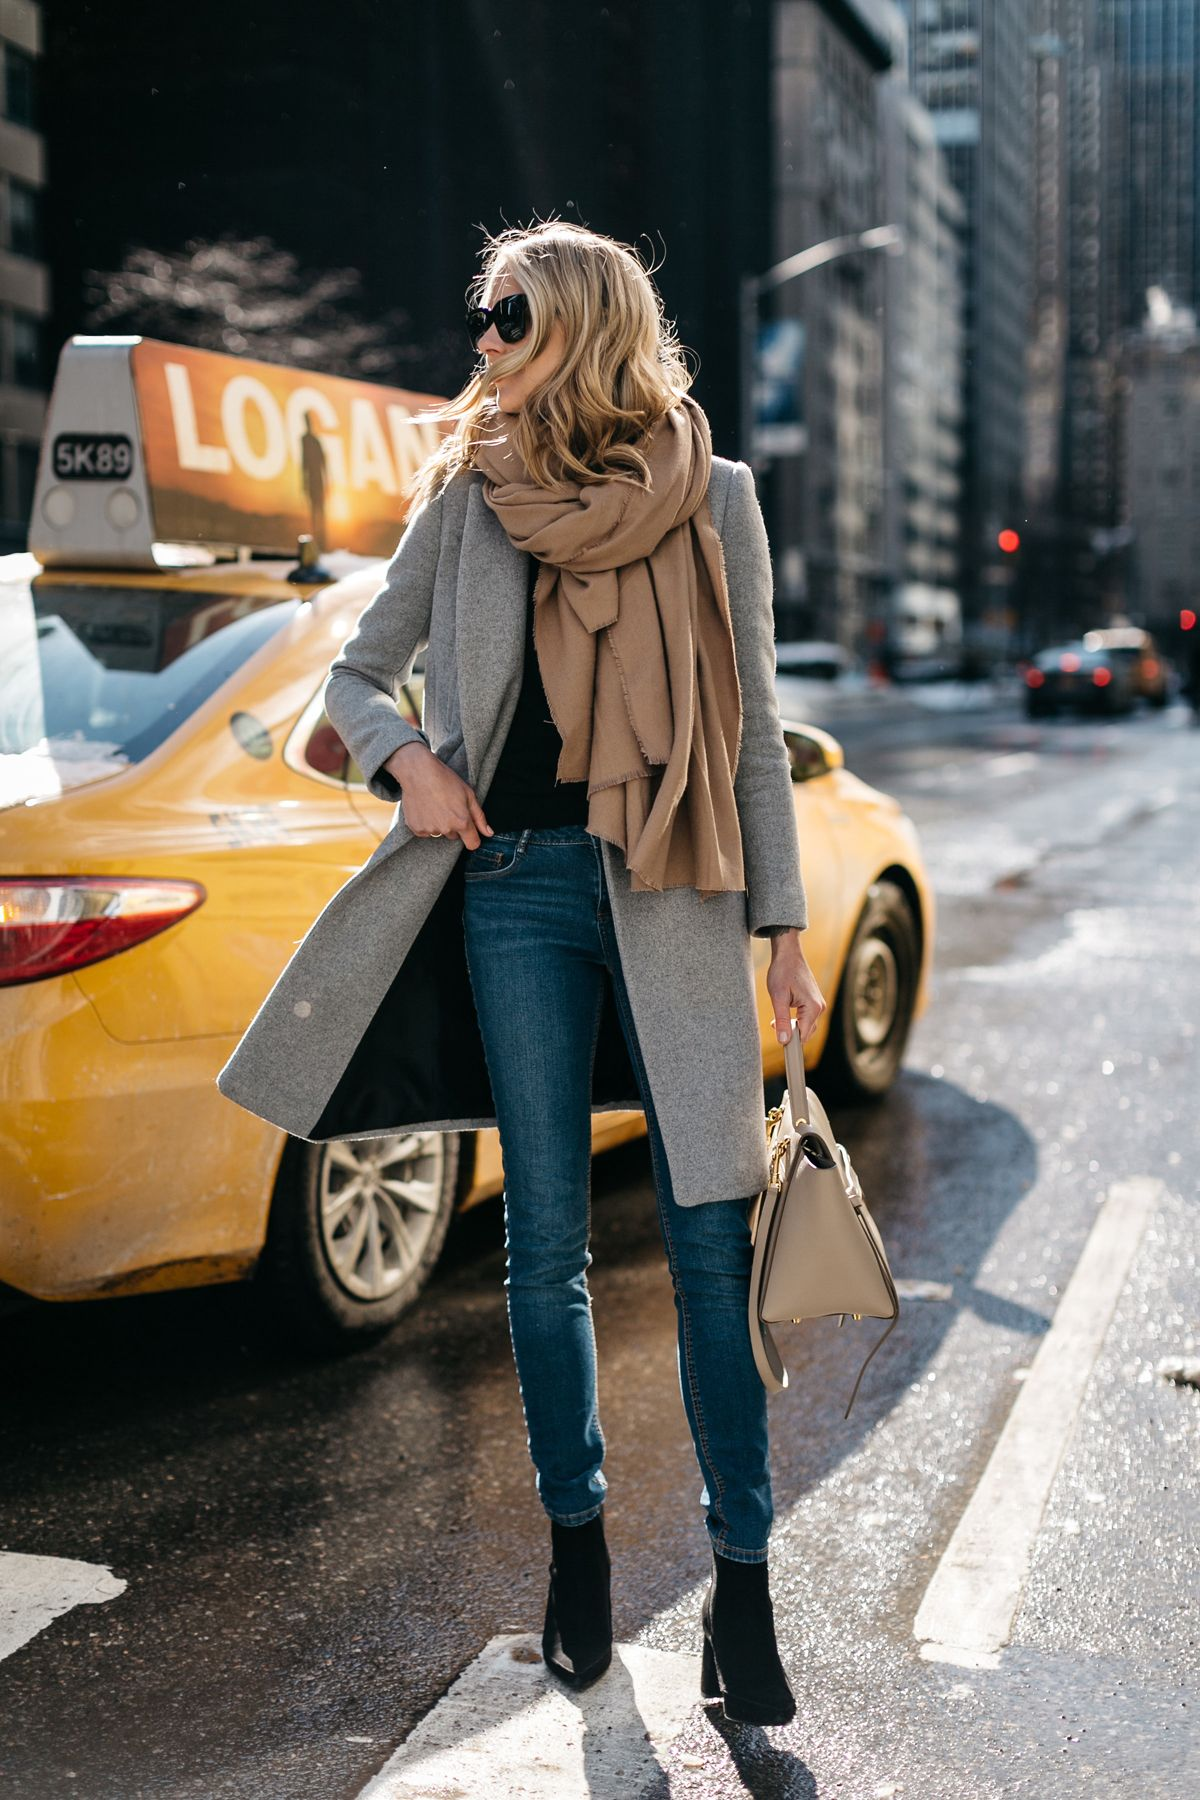 How to Dress to Impress When Traveling the World - Fashion Jackson - blanket scarves - blanket scarf - travel outfit ideas - fashionable travel tips